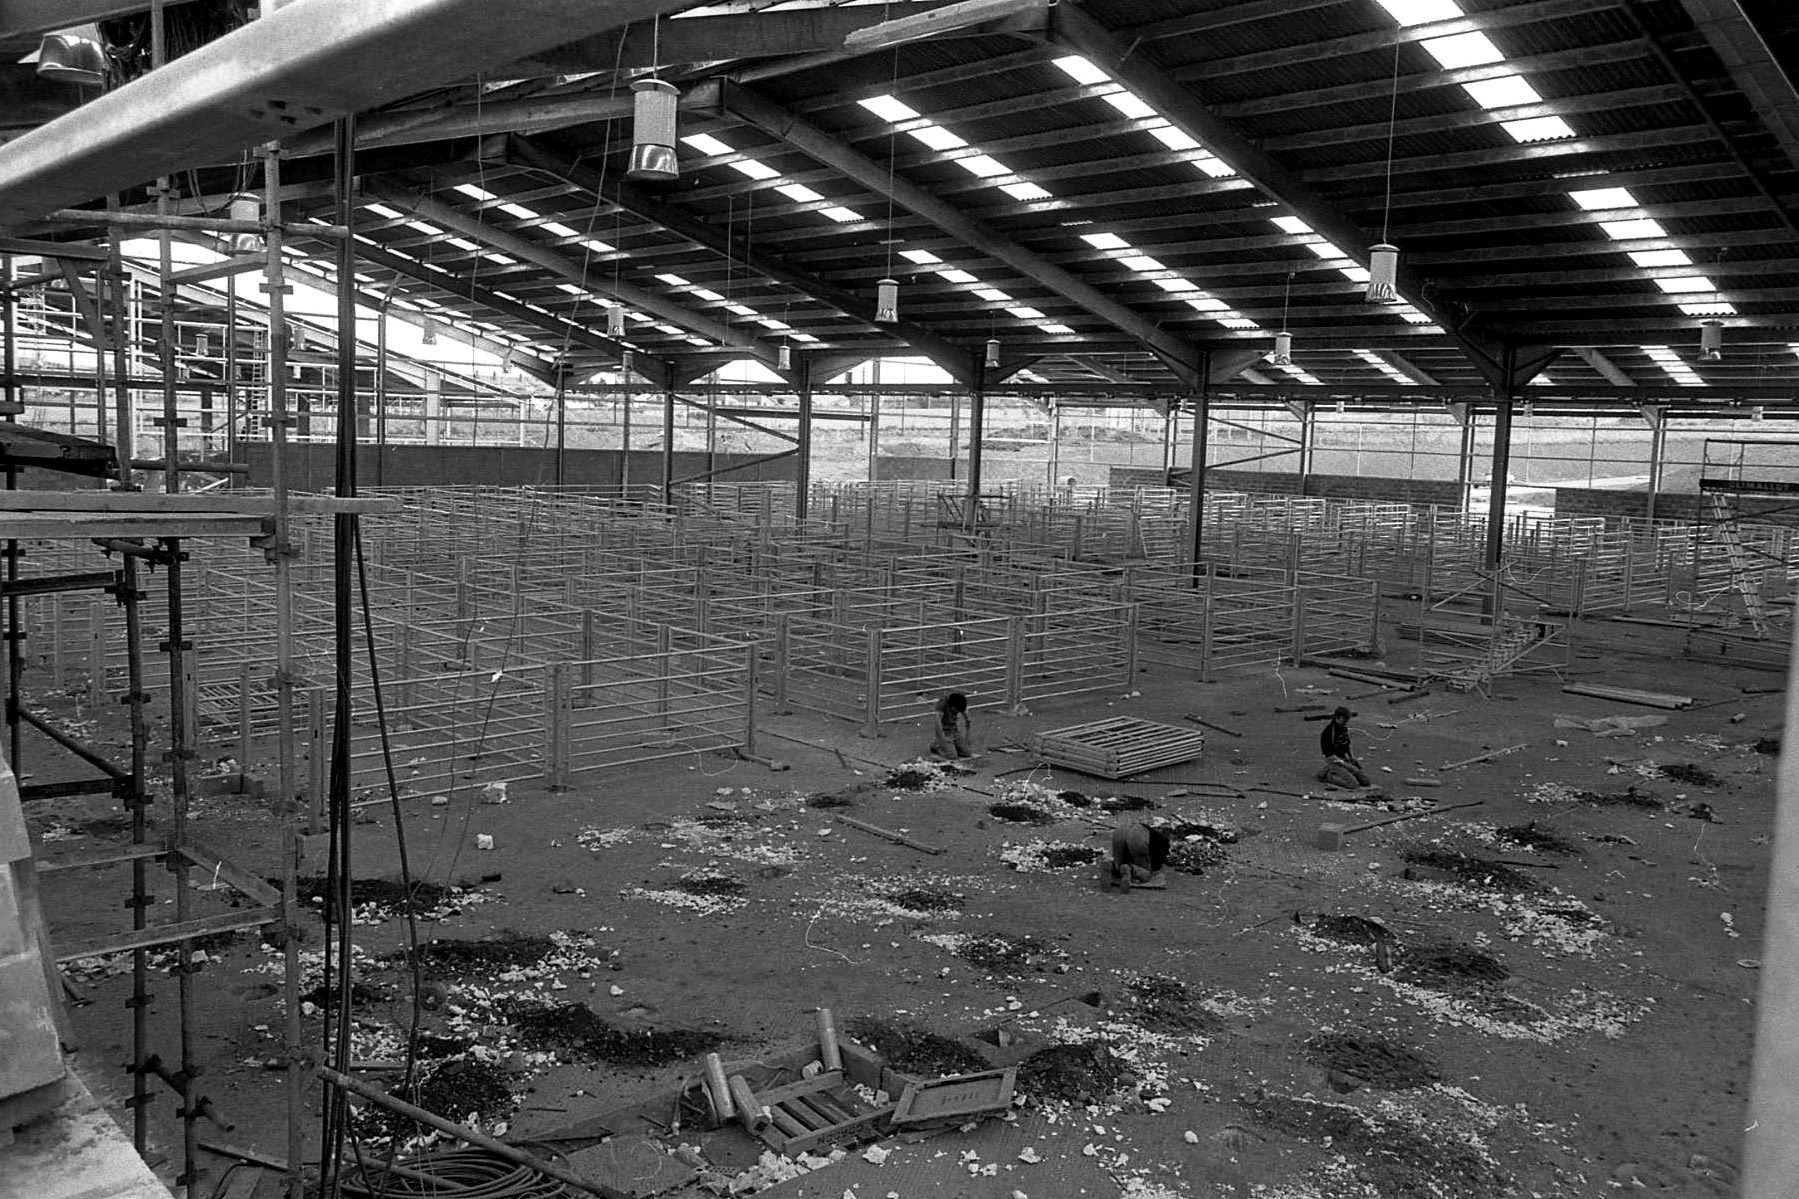 Aberdeen and Northern Marts moved to their new purpose built mart at Thainstone, Inverurie, in 1989 at a cost of £4m